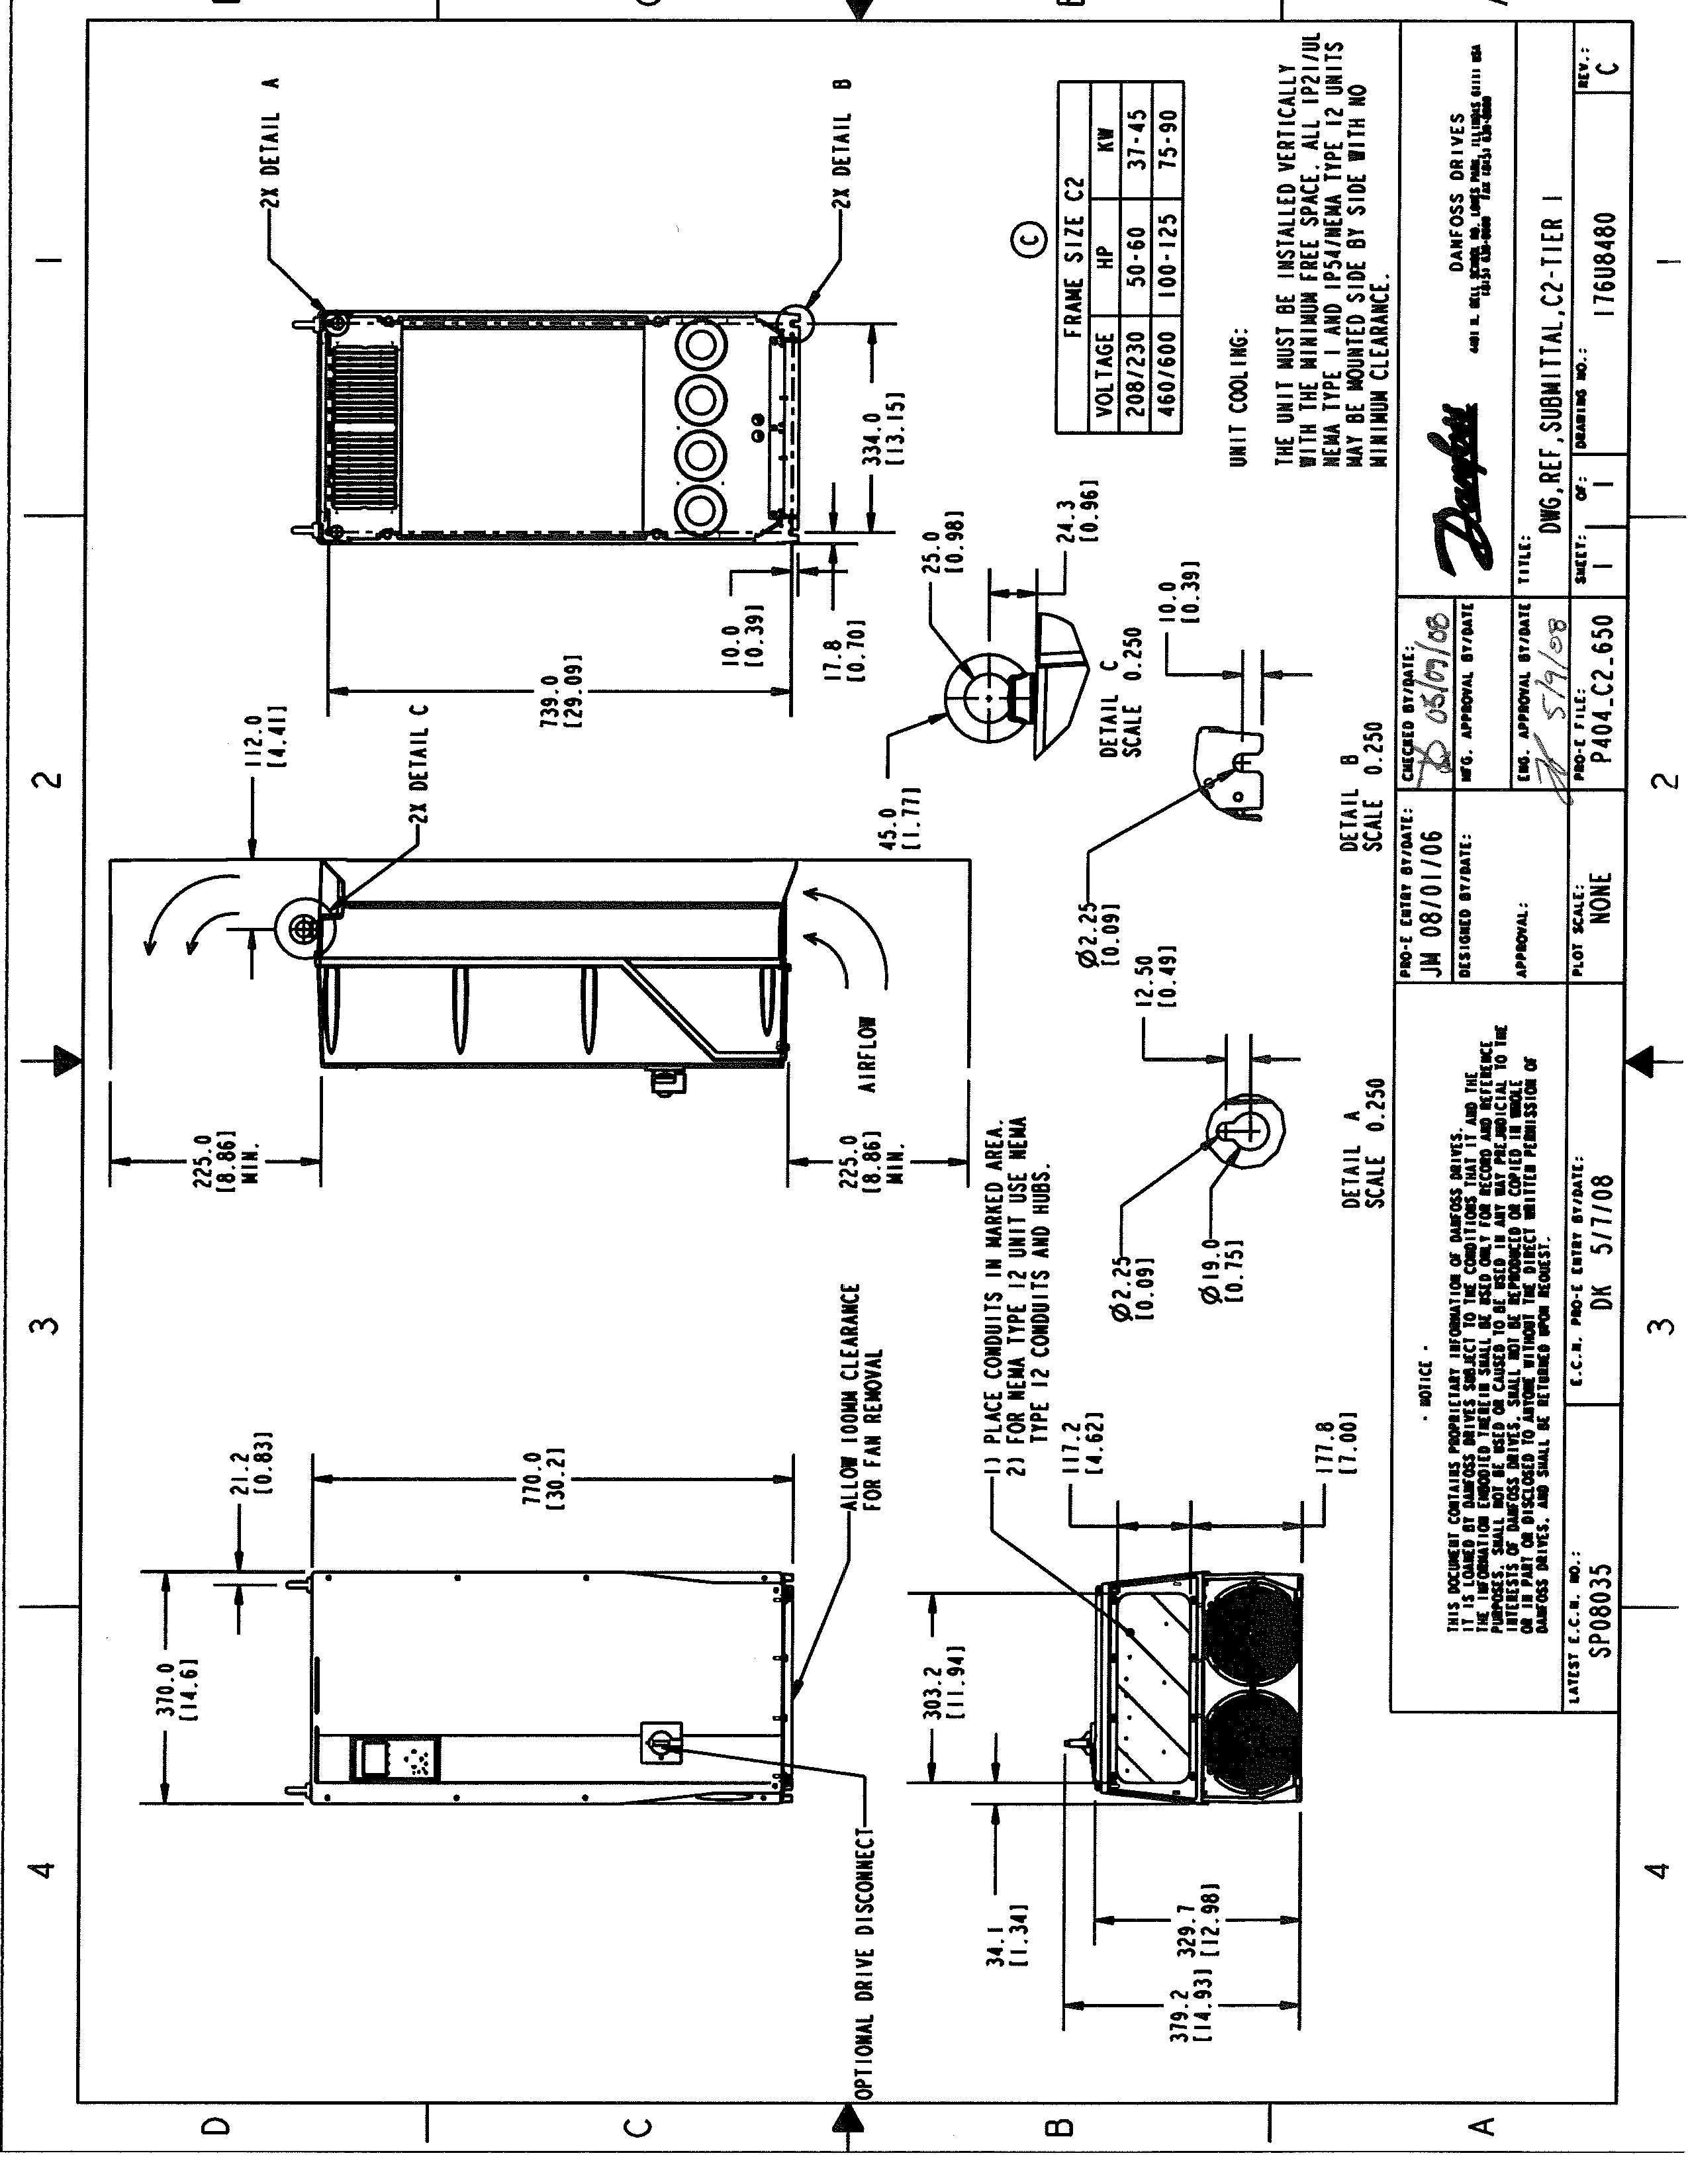 Danfoss Vlt Fc302 Manual